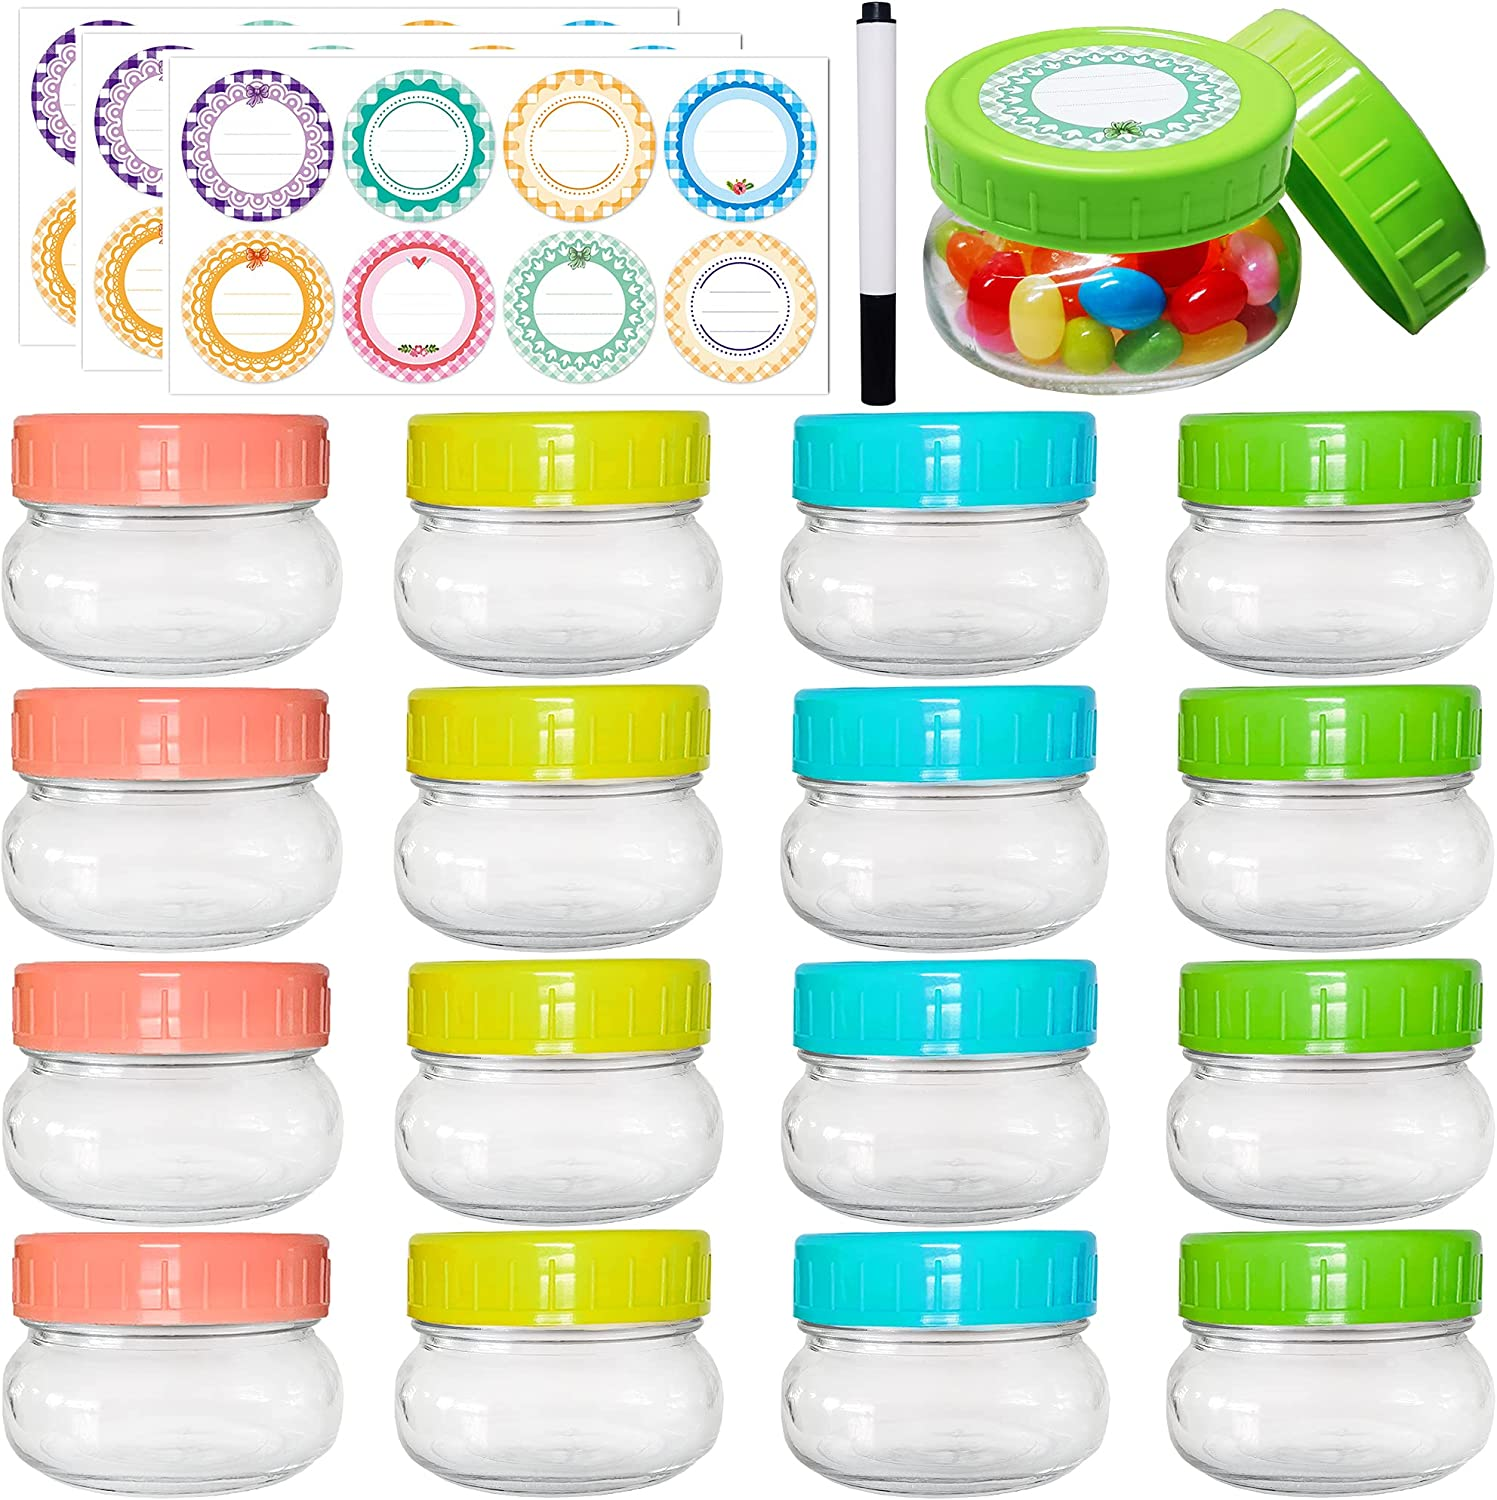 Mini Mason Jars 5 oz - 16 Pack Small Canning Glass Jars with Lids, Glass Round Cute Jars with Art Multicolor Waterproof Labels & Chalk Marker, Clear Containers Storage Jar for your Candy, Jelly, Overnight Oats, Yogurt, Honey & Baby Food (16-Pack with Multicolor Lids)